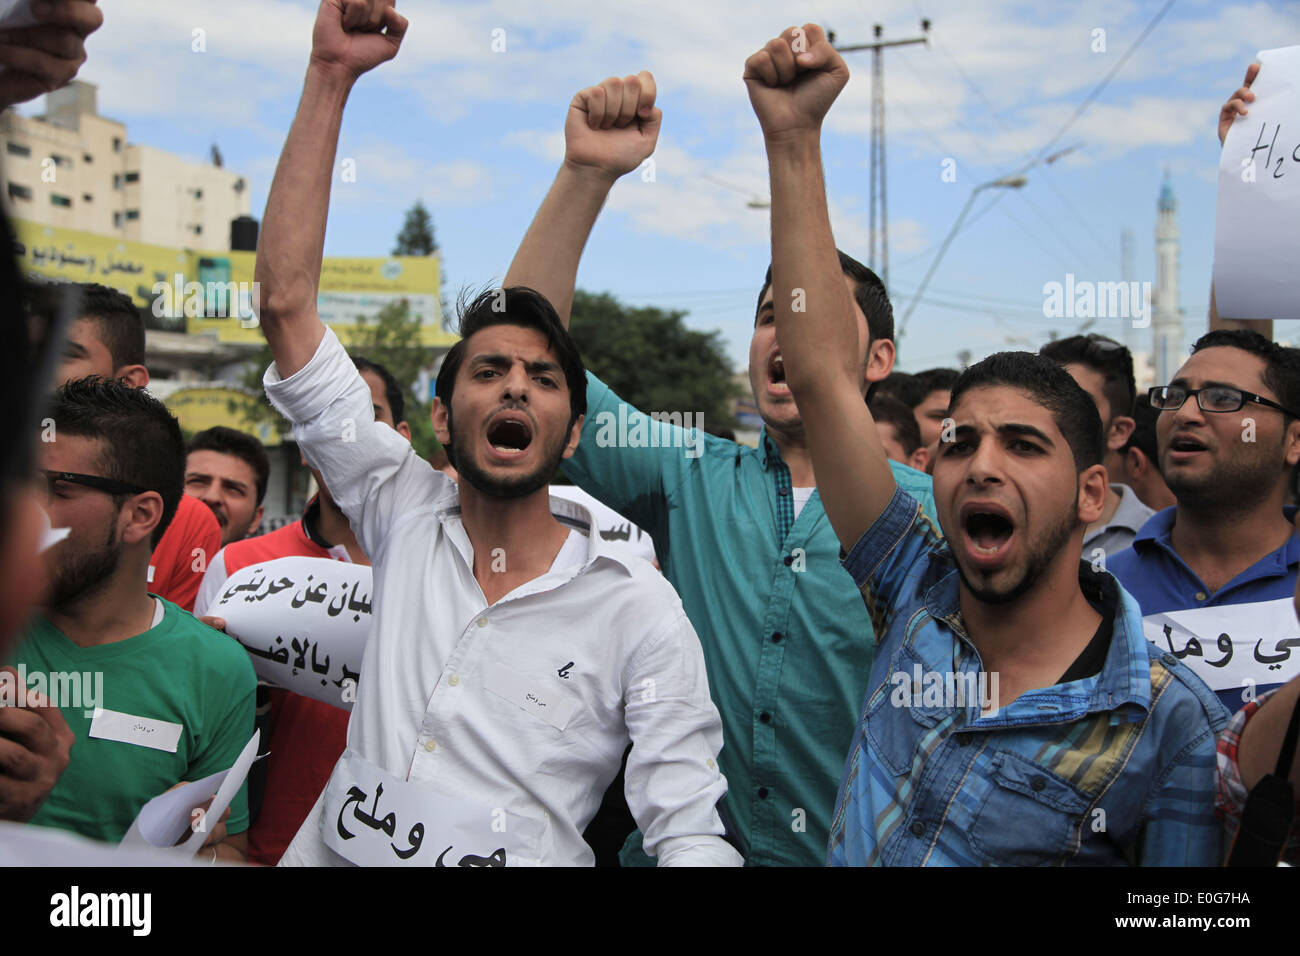 Gaza. 12th May, 2014. Palestinian protestors shout slogans during a protest in Gaza City, on May 12, 2014. The protest came in solidarity with 120 detainees who went on hunger strike two weeks ago protesting against their administrative detention. Credit:  Wissam Nassar/Xinhua/Alamy Live News - Stock Image